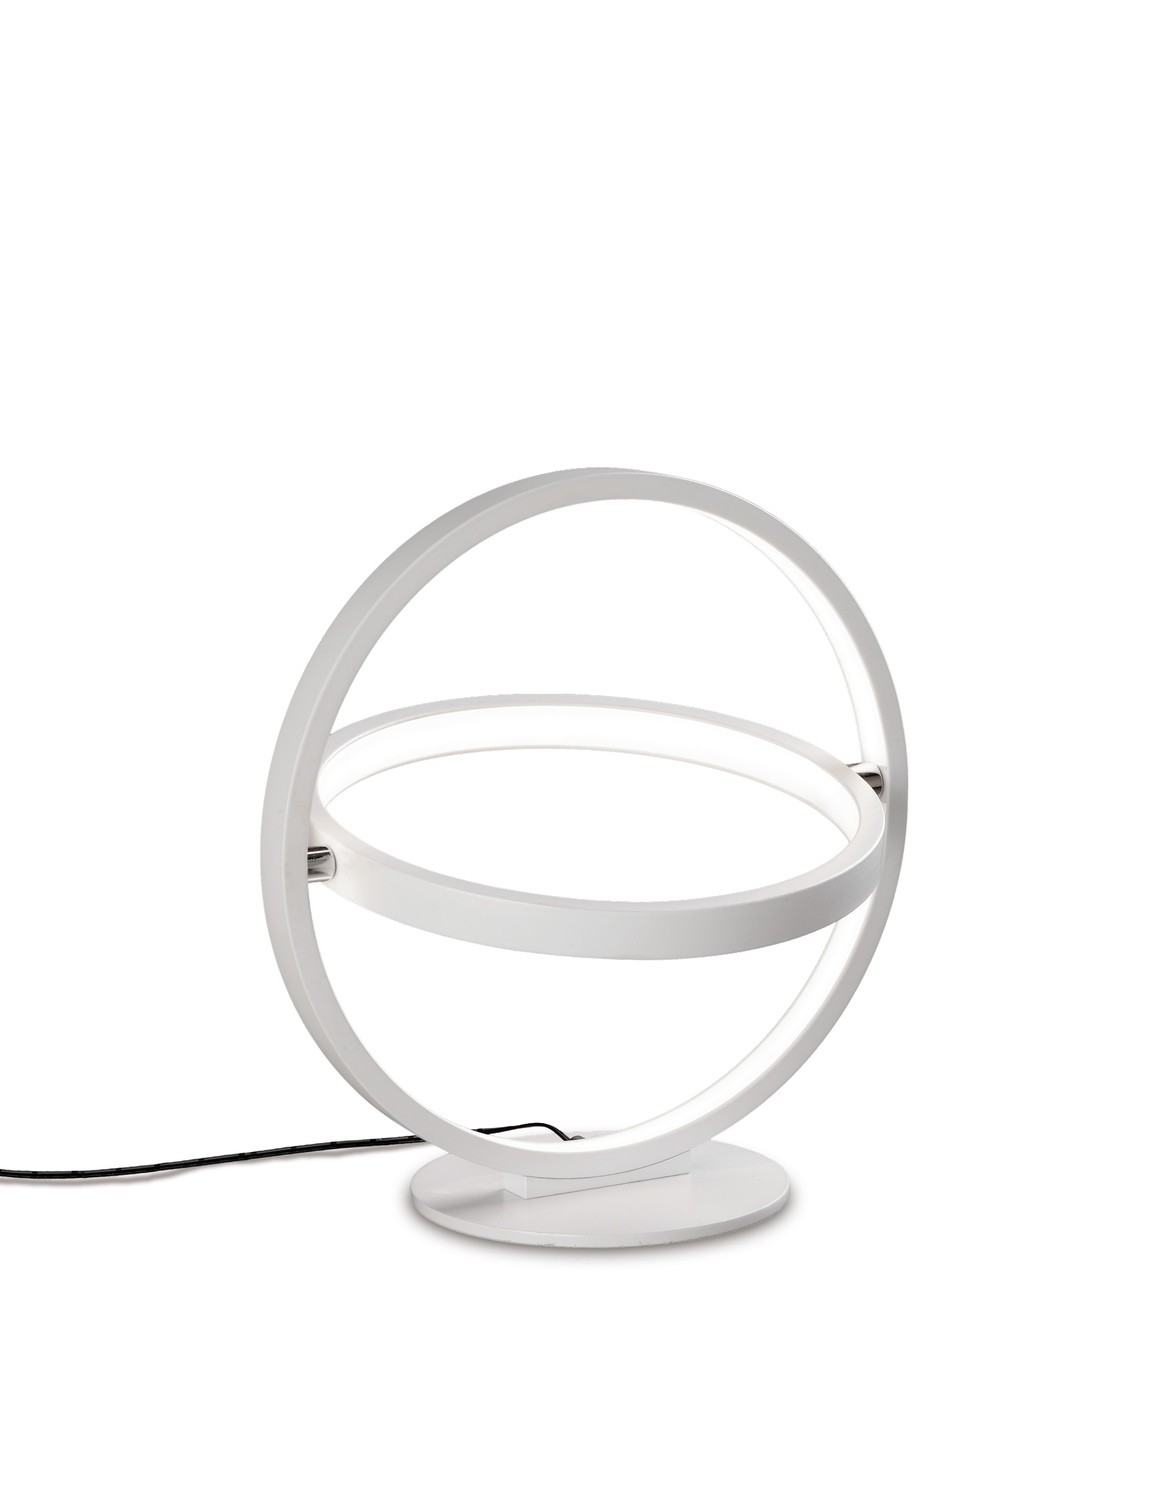 Mantra M5747 Orbital Table Lamp Round 30cm, 2 Ring, 12W LED 3000K, 660lm, White, 3yrs Warranty